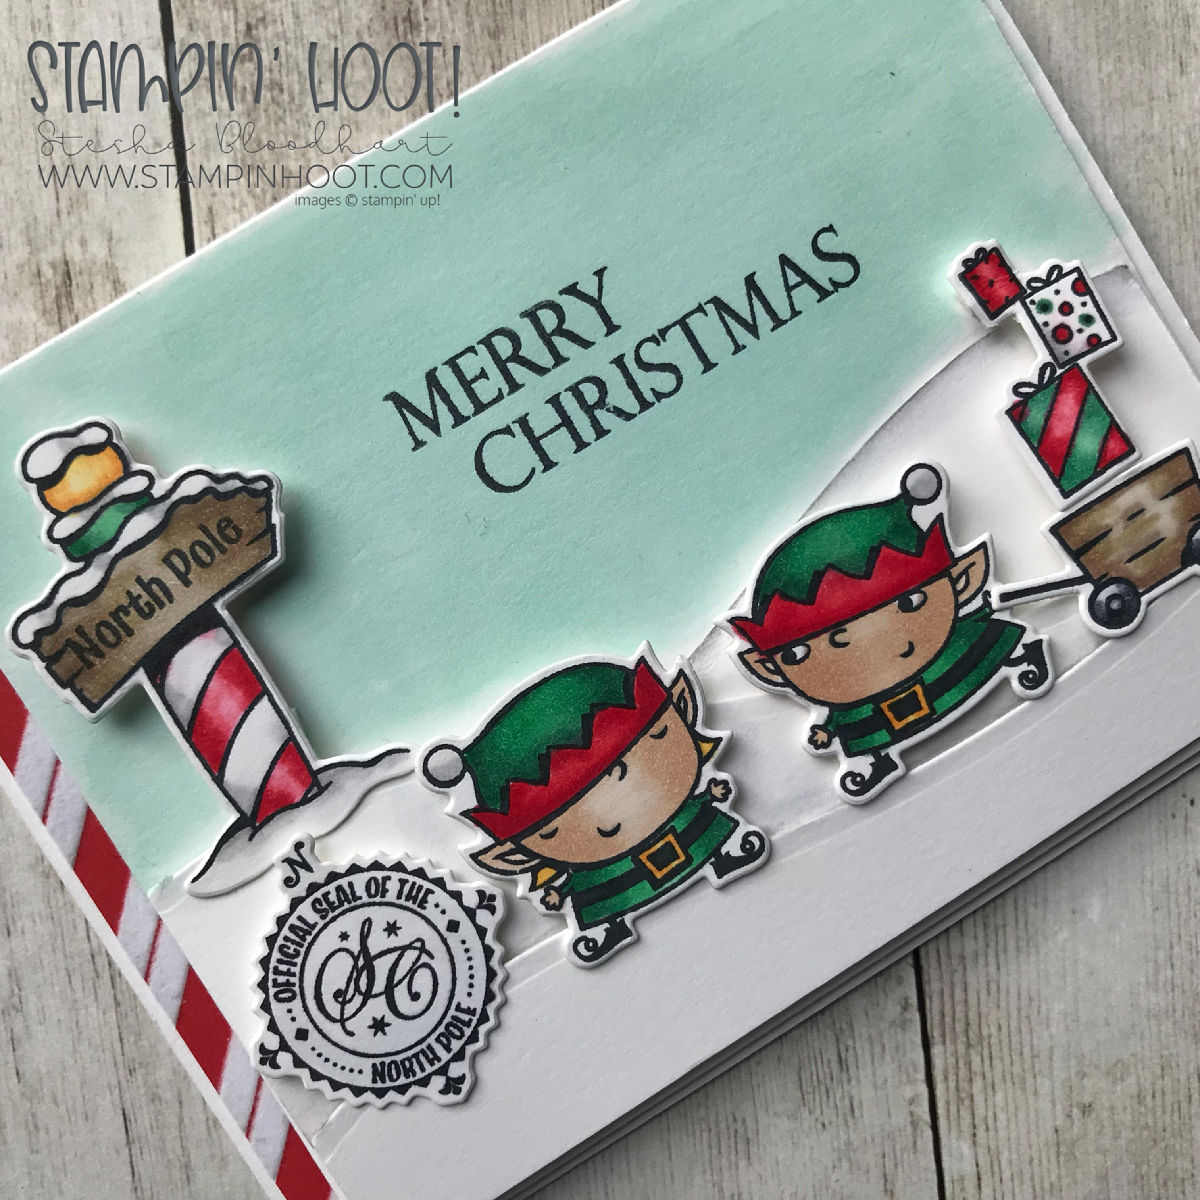 Signs of Santa Bundle by Stampin' Up! Holiday Card created by Stesha Bloodhart, Stampin' Hoot! #steshabloodhart #stampinhoot